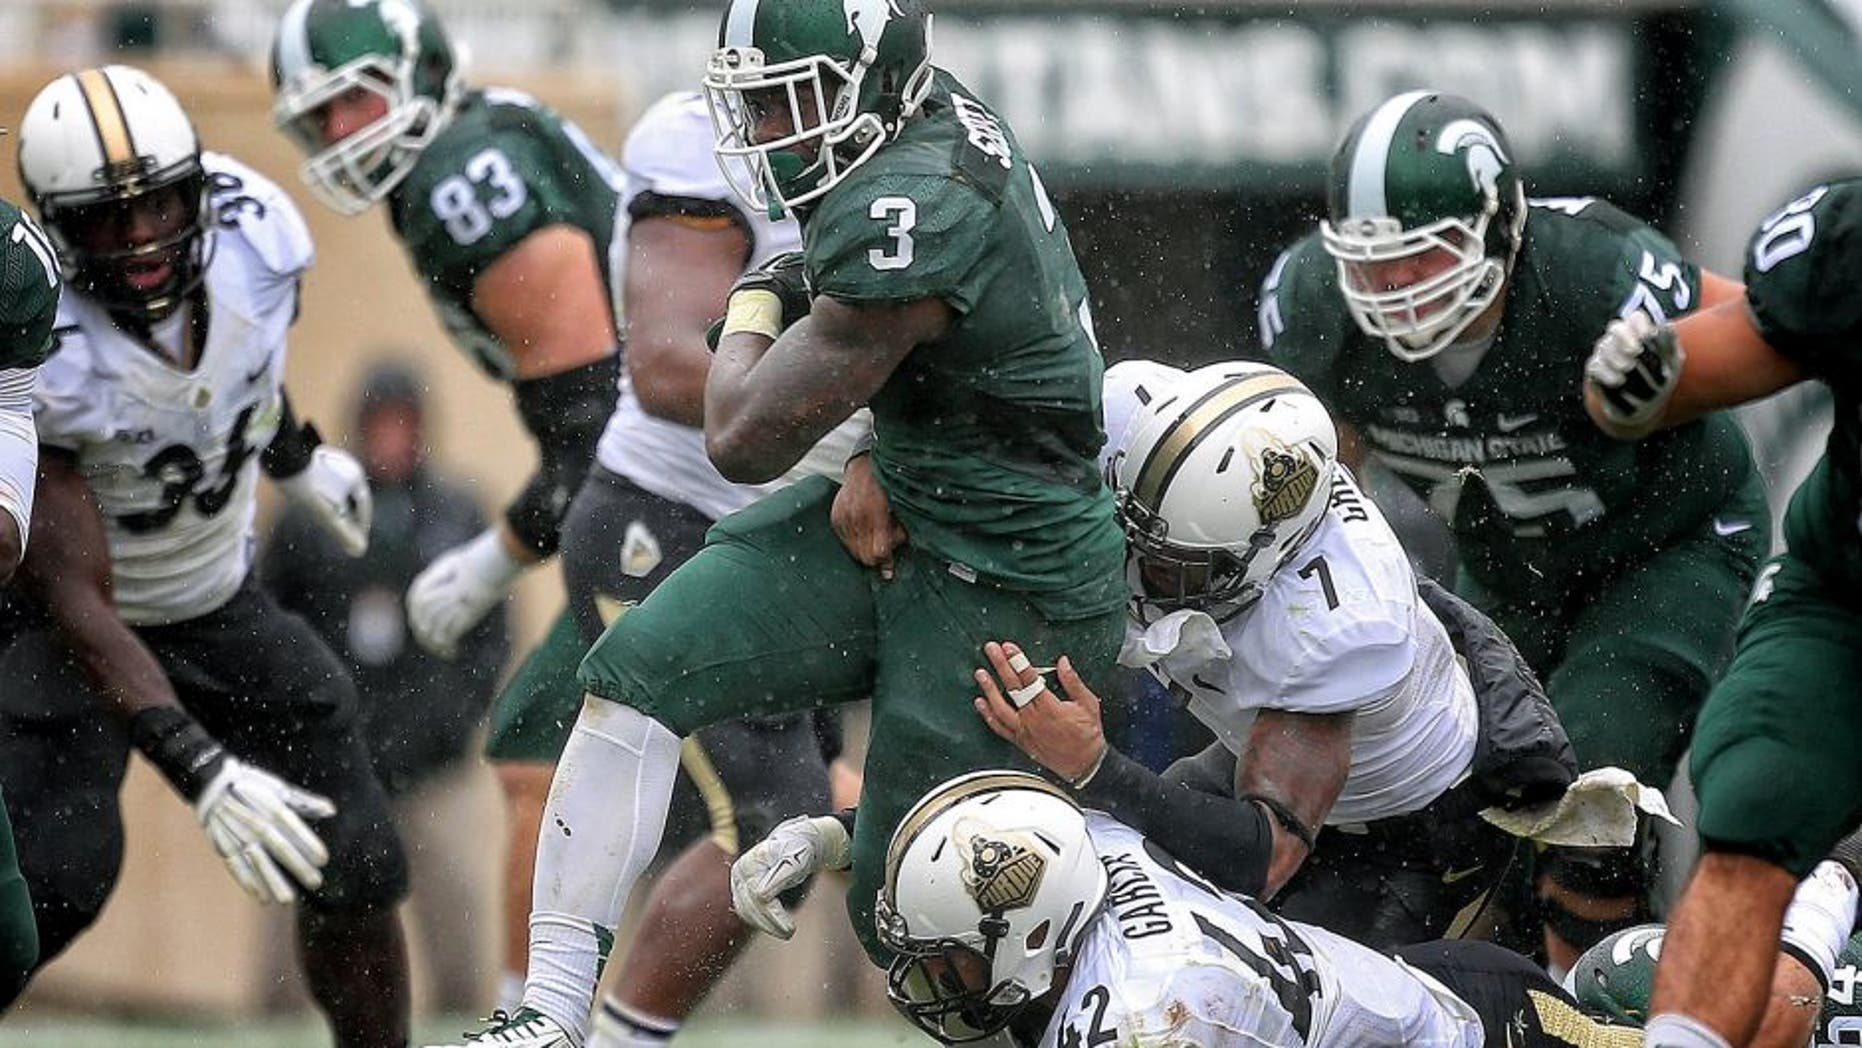 Oct 3, 2015; East Lansing, MI, USA; Michigan State Spartans running back LJ Scott (3) is tackled by Purdue Boilermakers linebacker Andy James Garcia (42) and Purdue Boilermakers safety Robert Gregory (7) during the 2nd half of a game at Spartan Stadium. MSU won 24-21. Mandatory Credit: Mike Carter-USA TODAY Sports